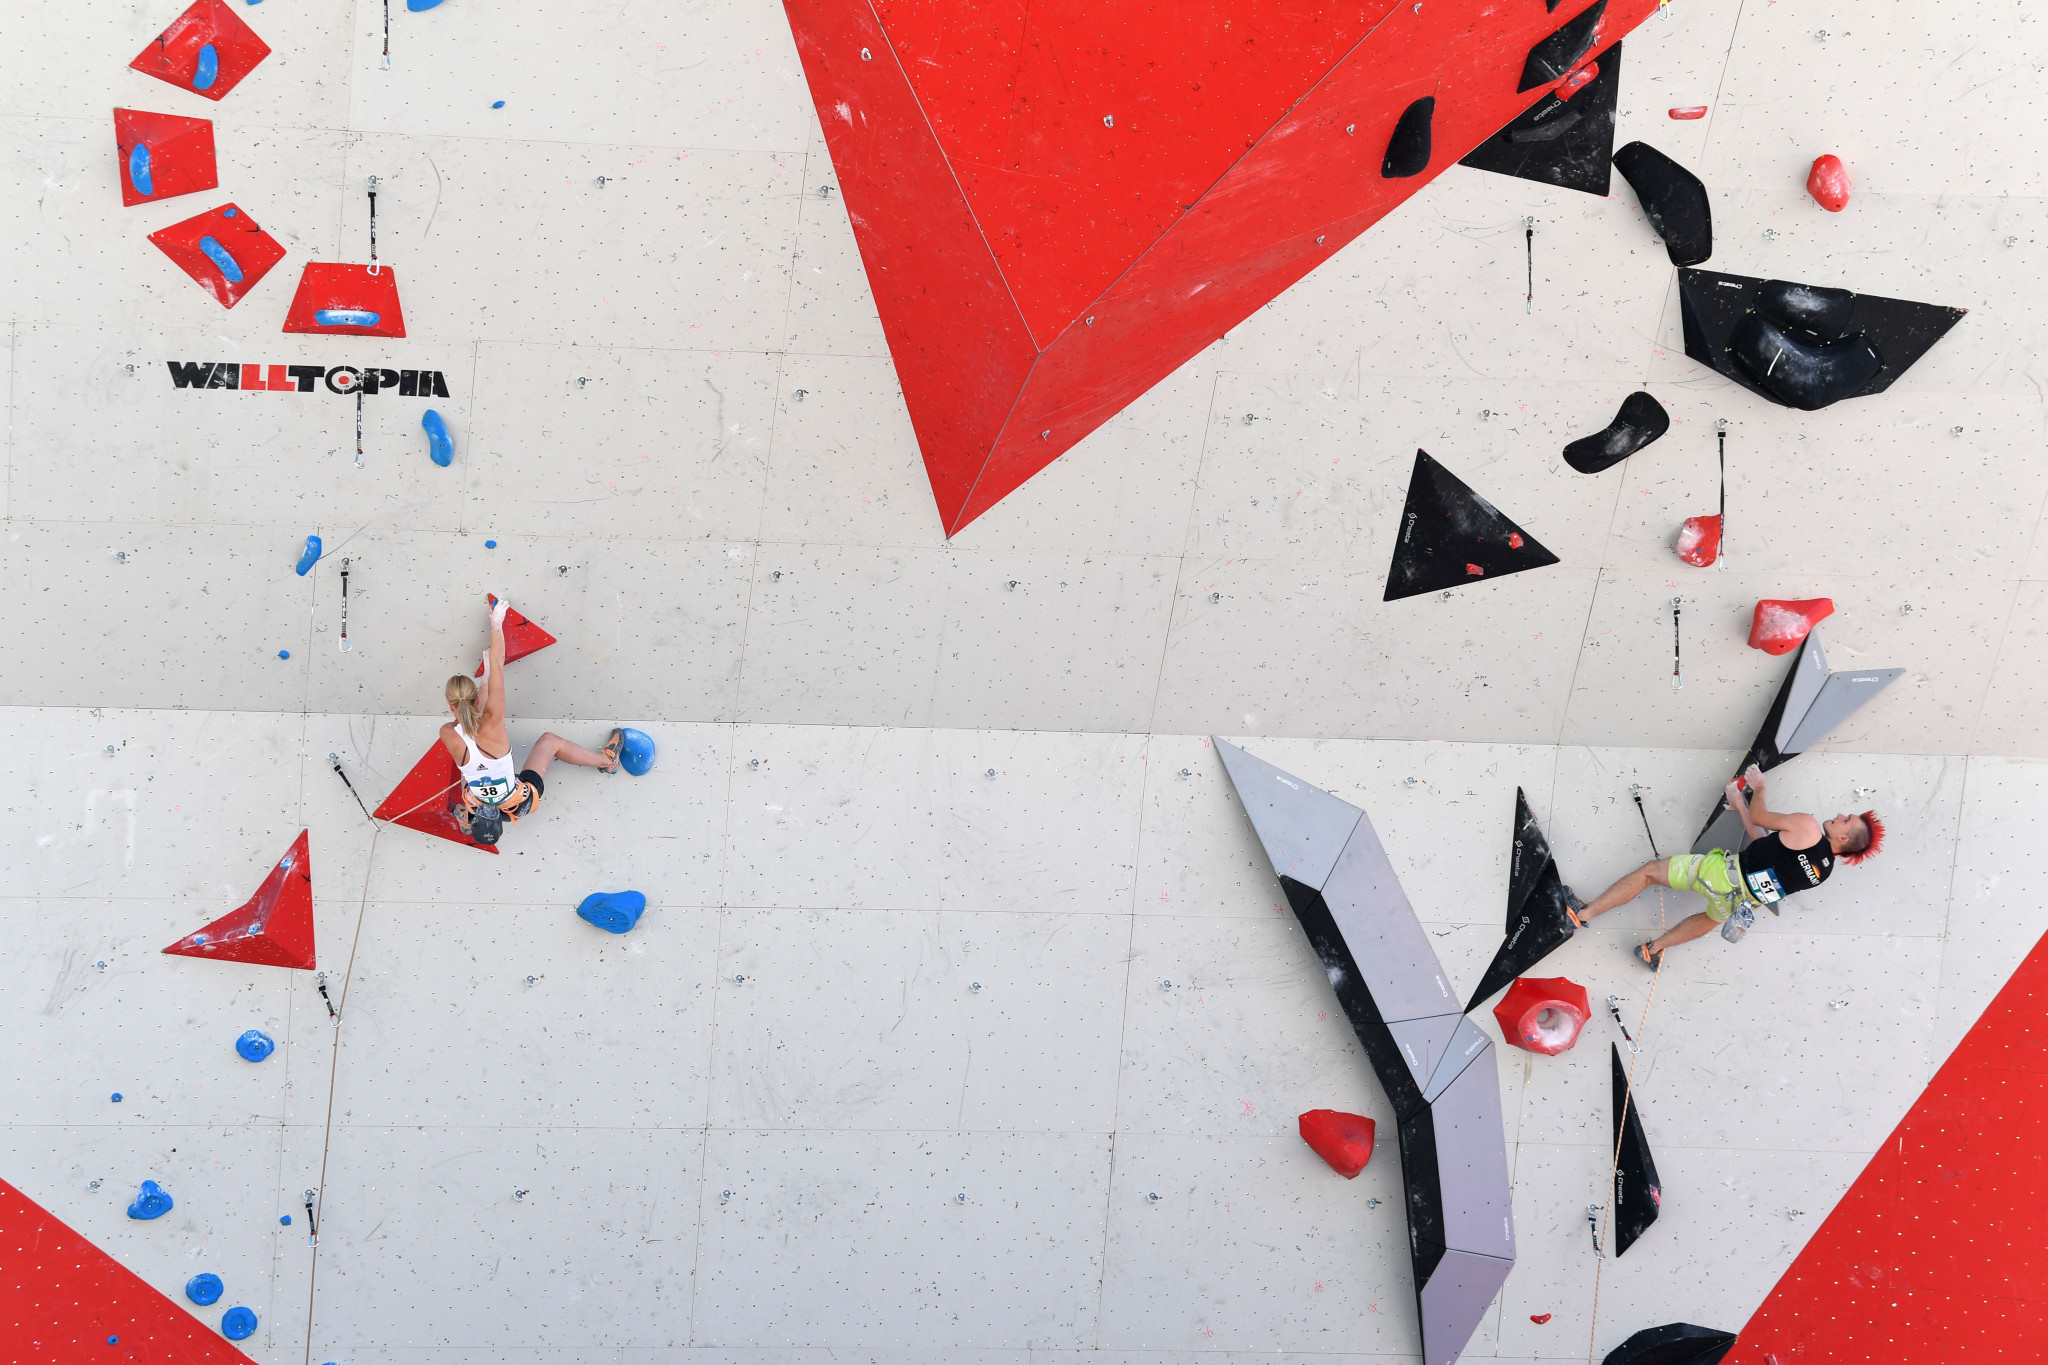 The test event in sport climbing has been pushed back by six months ©Getty Images